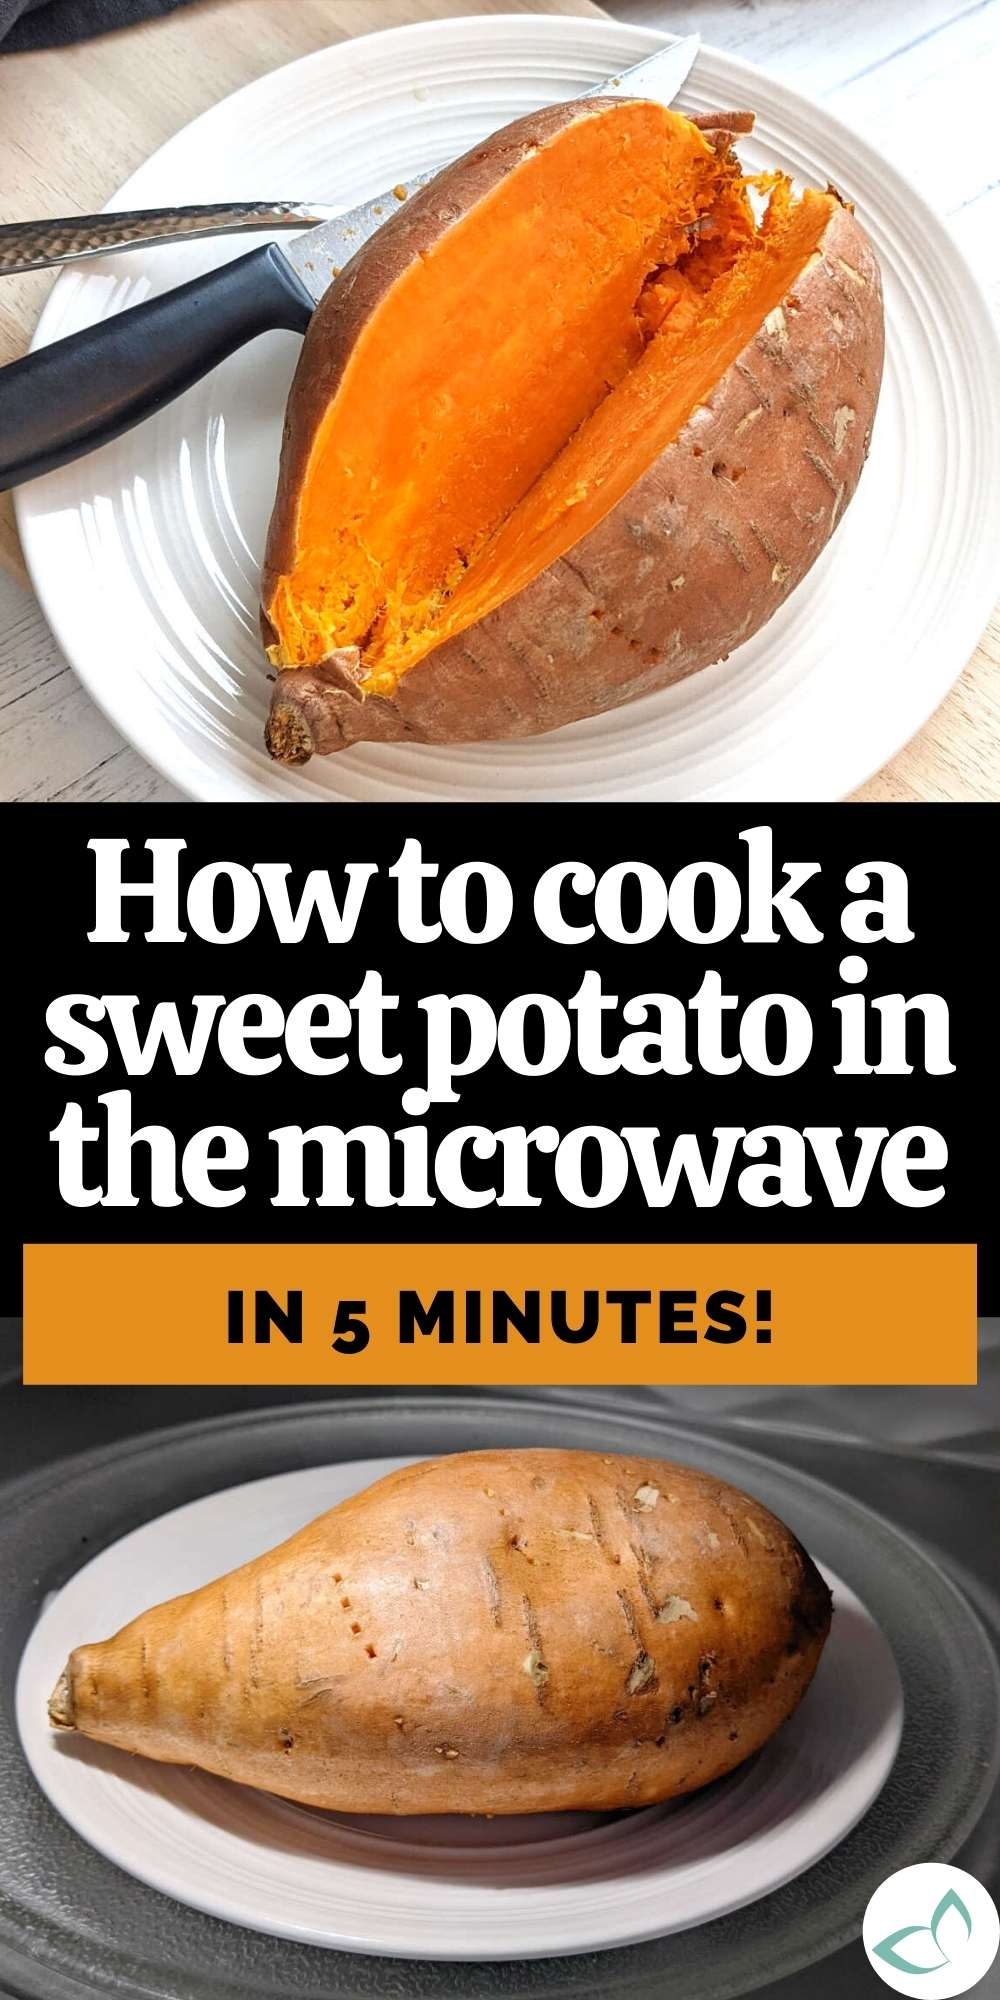 How to cook a sweet potato in the microwave pin image.